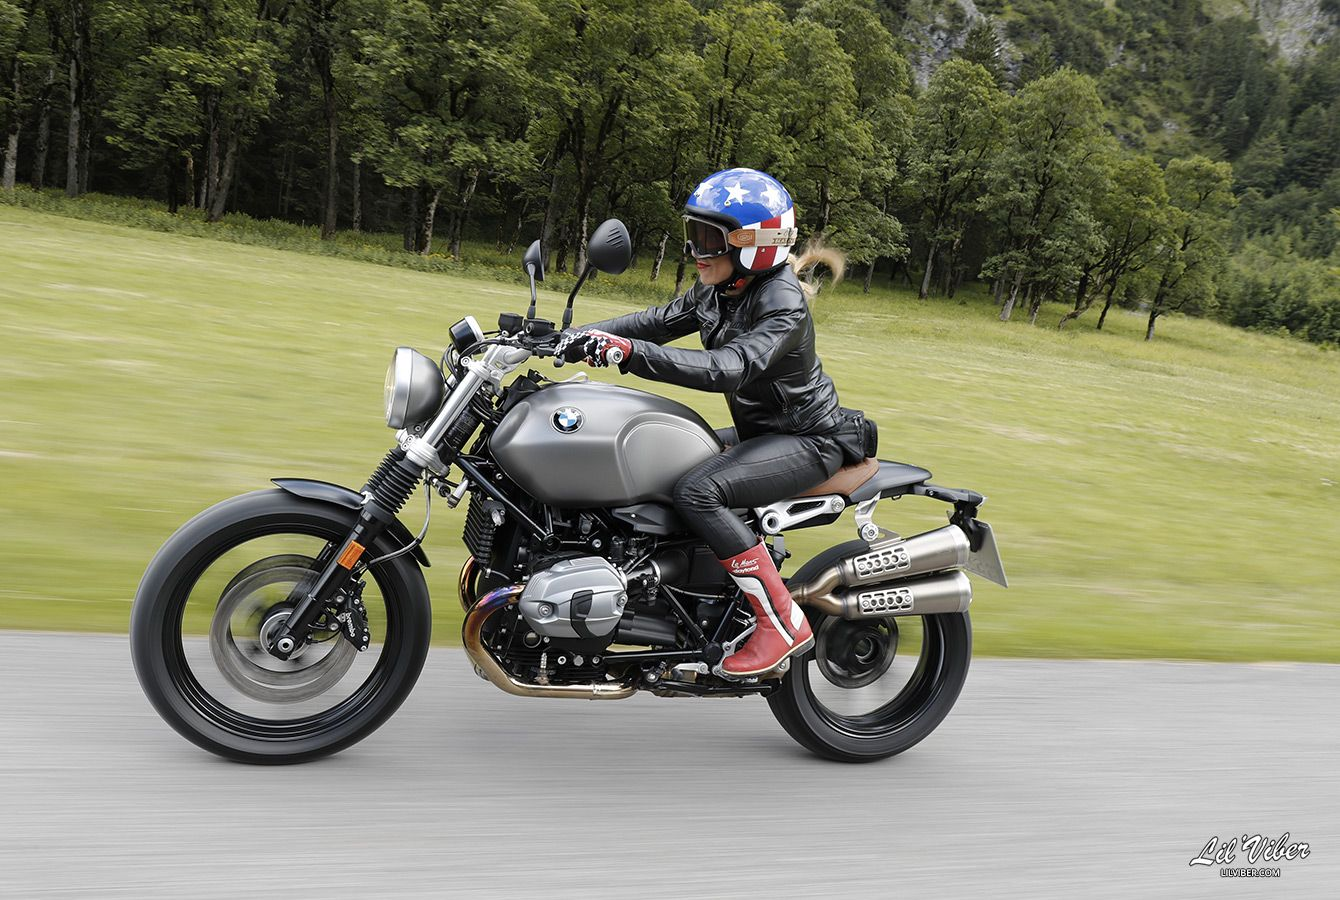 Cafe Racer – Engines, Fuel & Passions